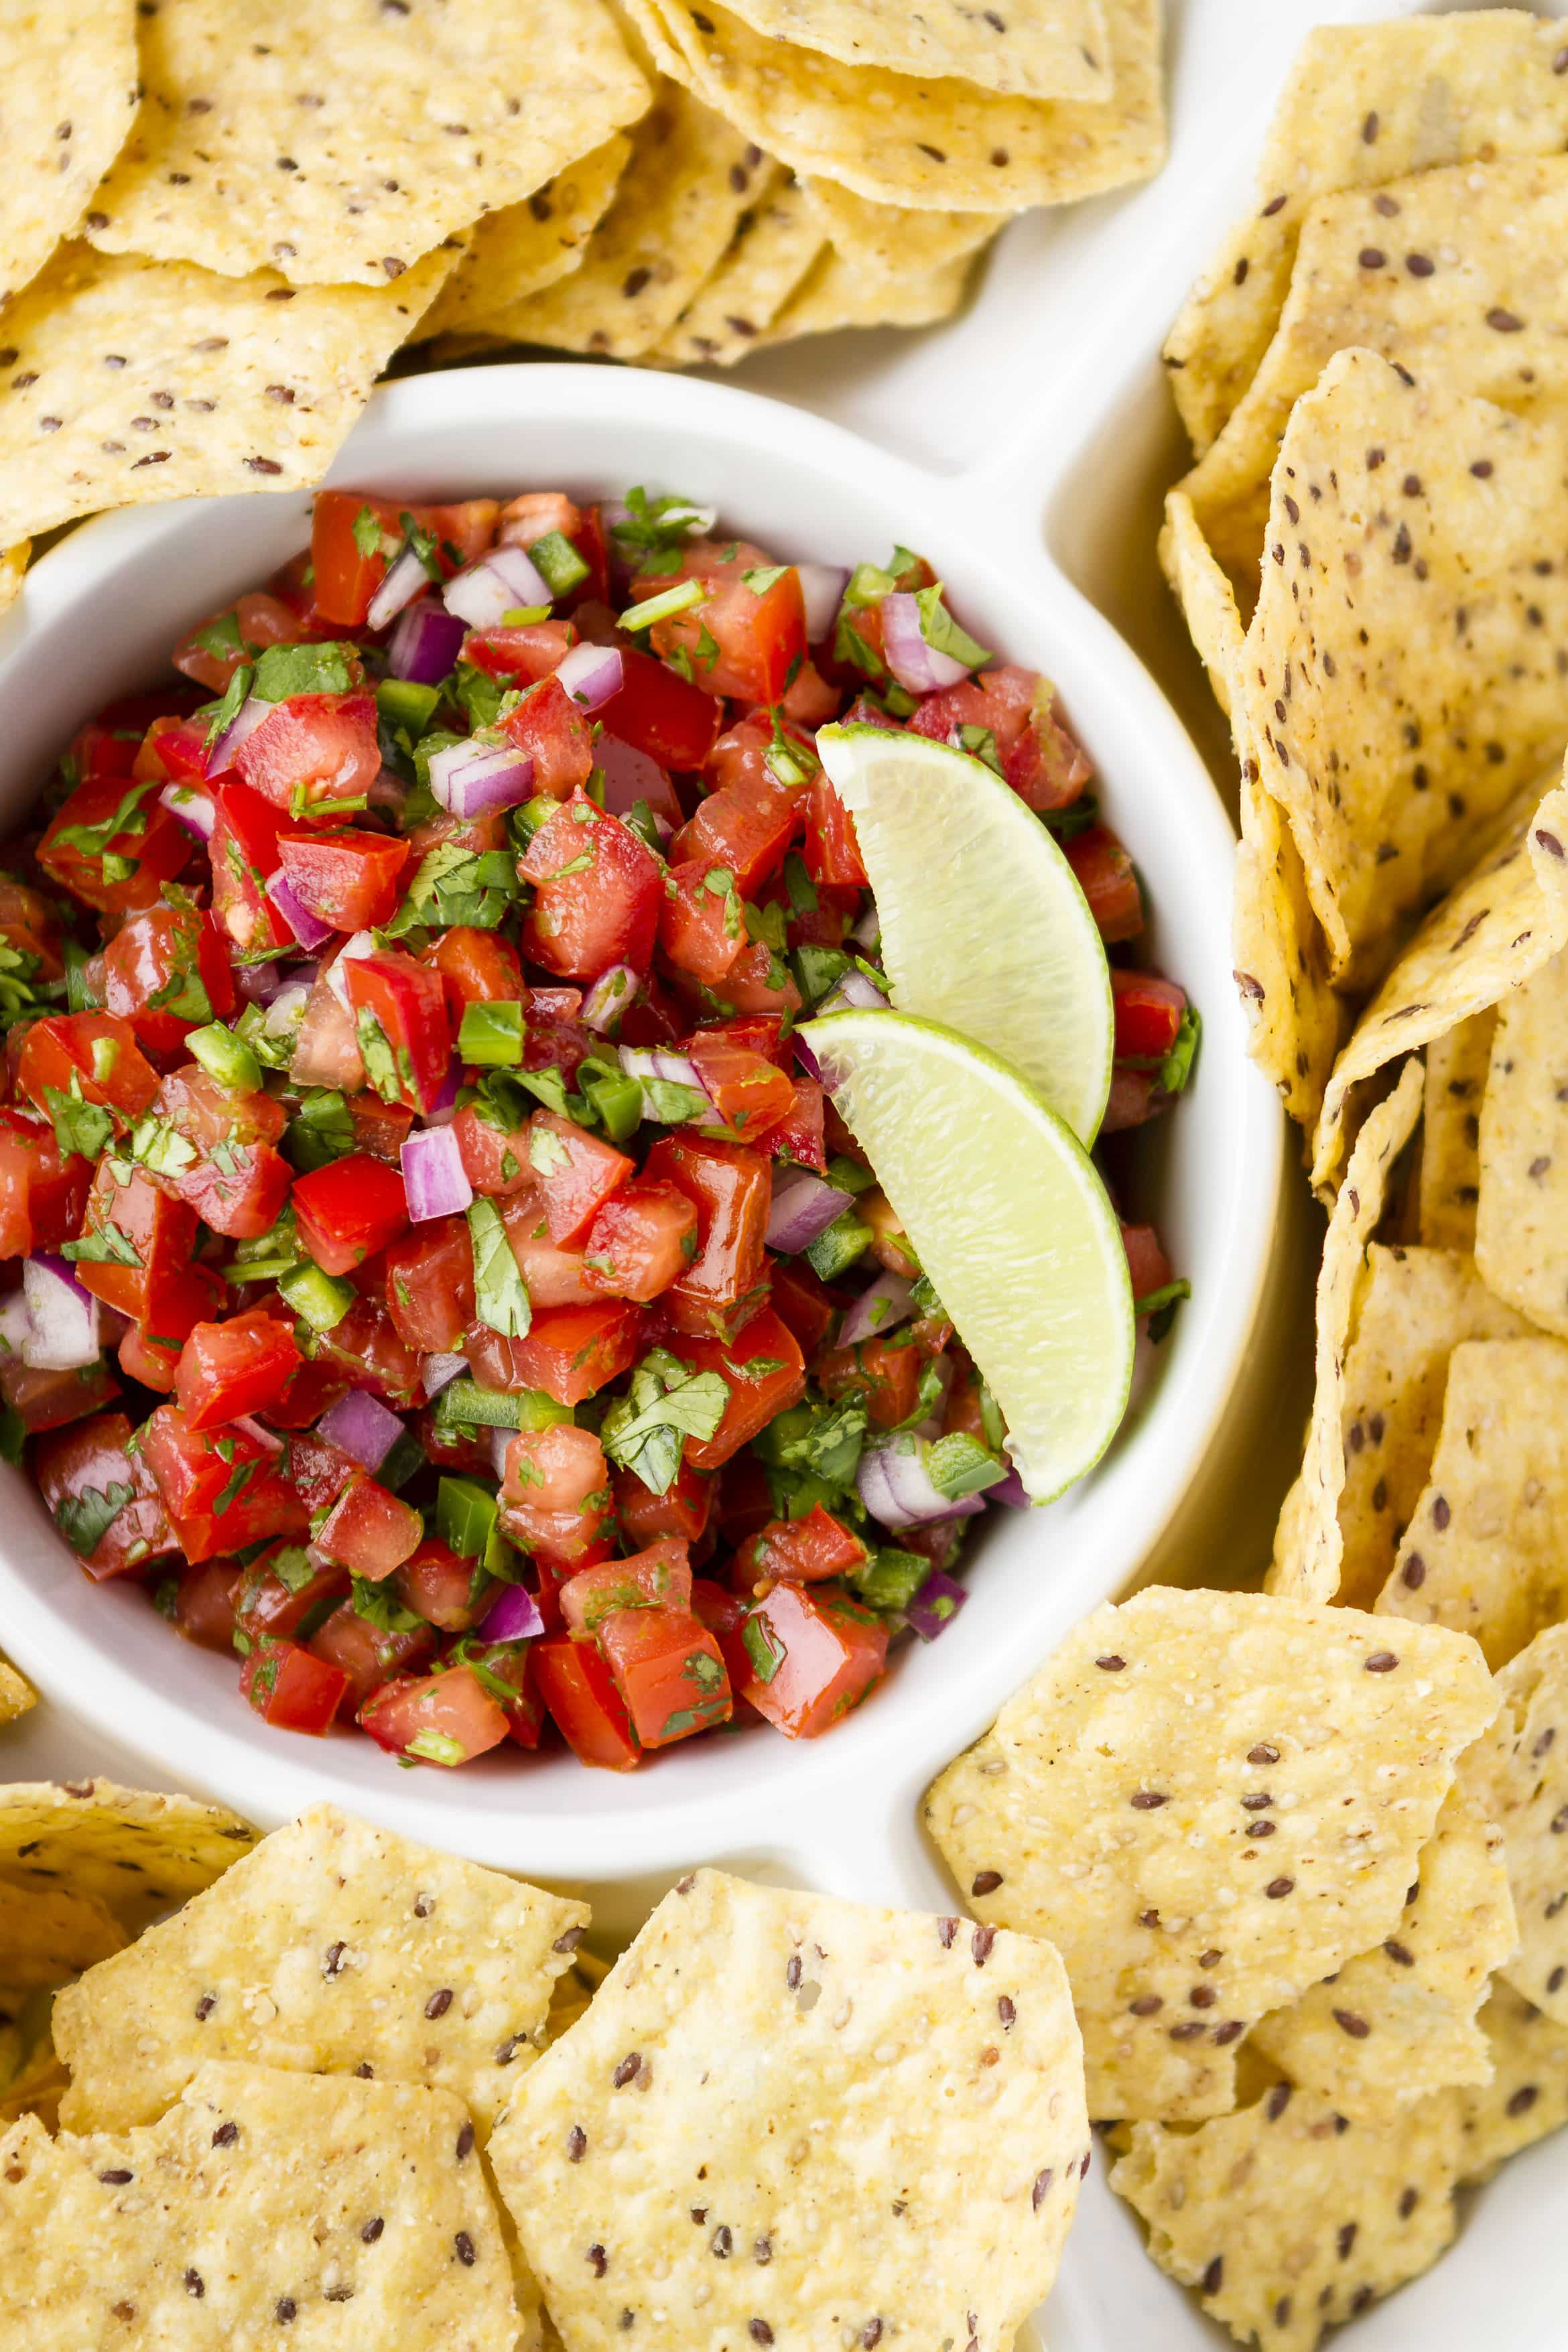 Fresh Tomato Salsa -- sweet, juicy tomatoes, red onion for a little bite, cilantro, lime juice and zest, and a little diced jalapeño pepper, plus a dash of salt are all you need for a deliciously homemade fresh tomato salsa... SO simple and flavorful! | pico de gallo | salsa fresca | fresh tomato salsa recipe | easy fresh tomato salsa | 5 ingredients | find the recipe on unsophisticook.com